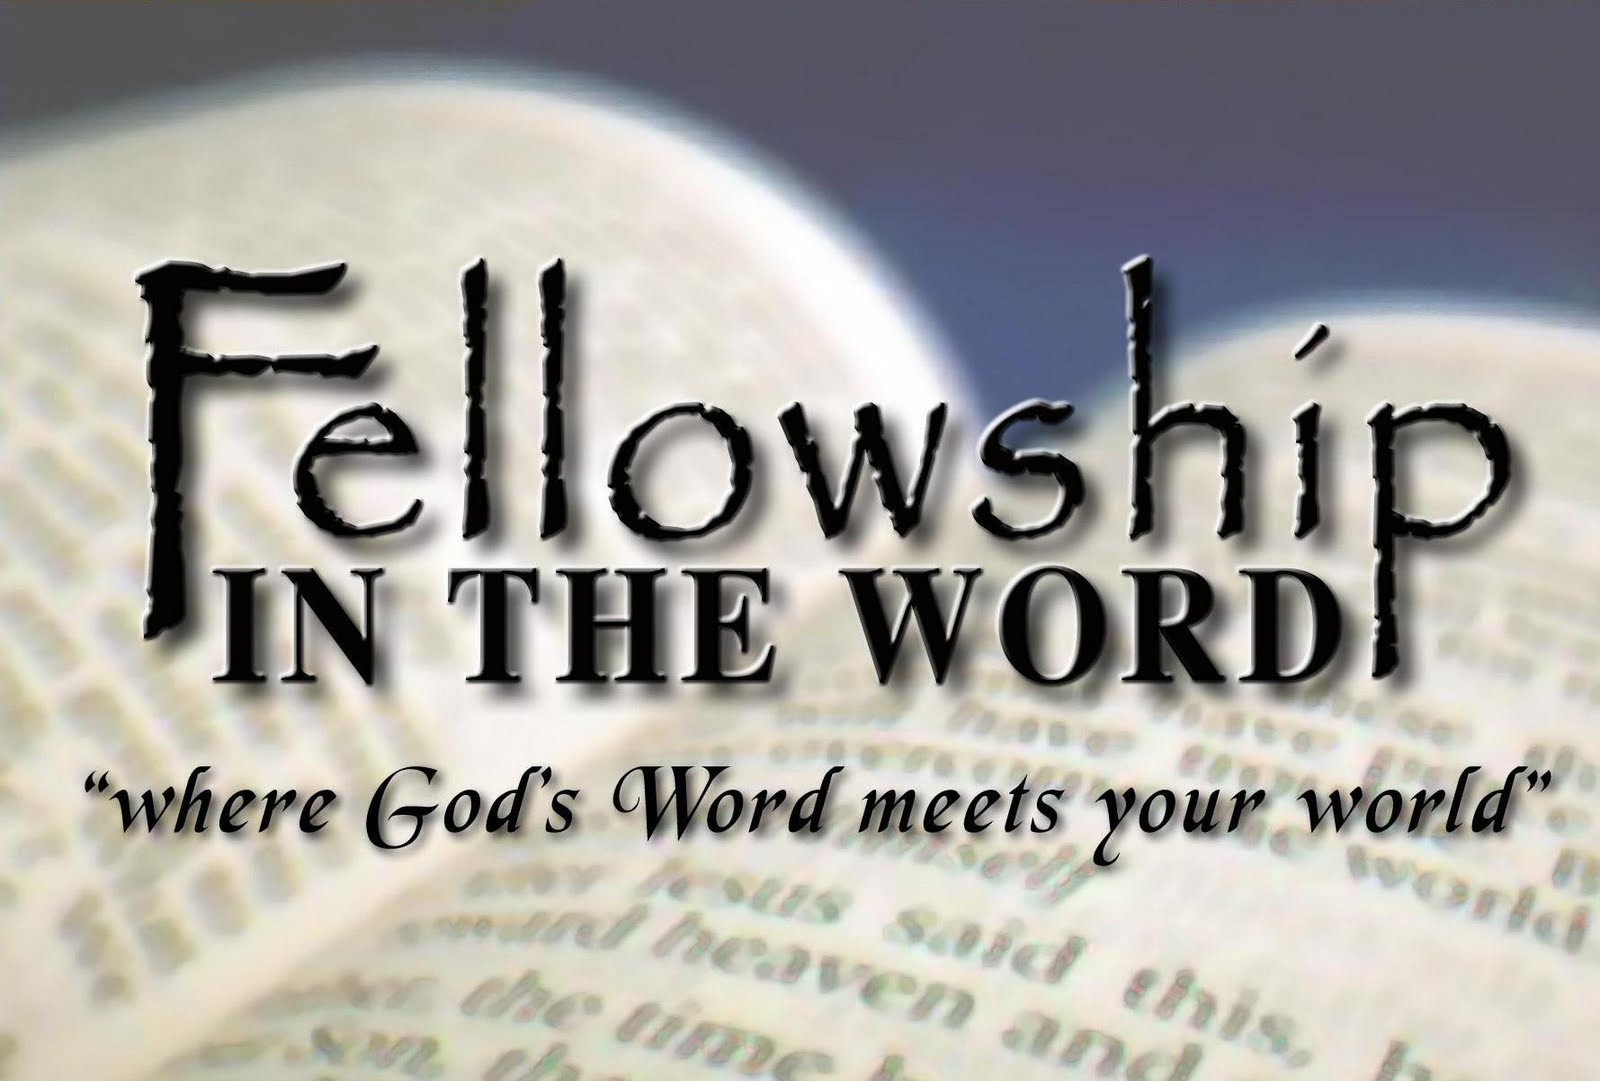 meet with fellow believers in christ